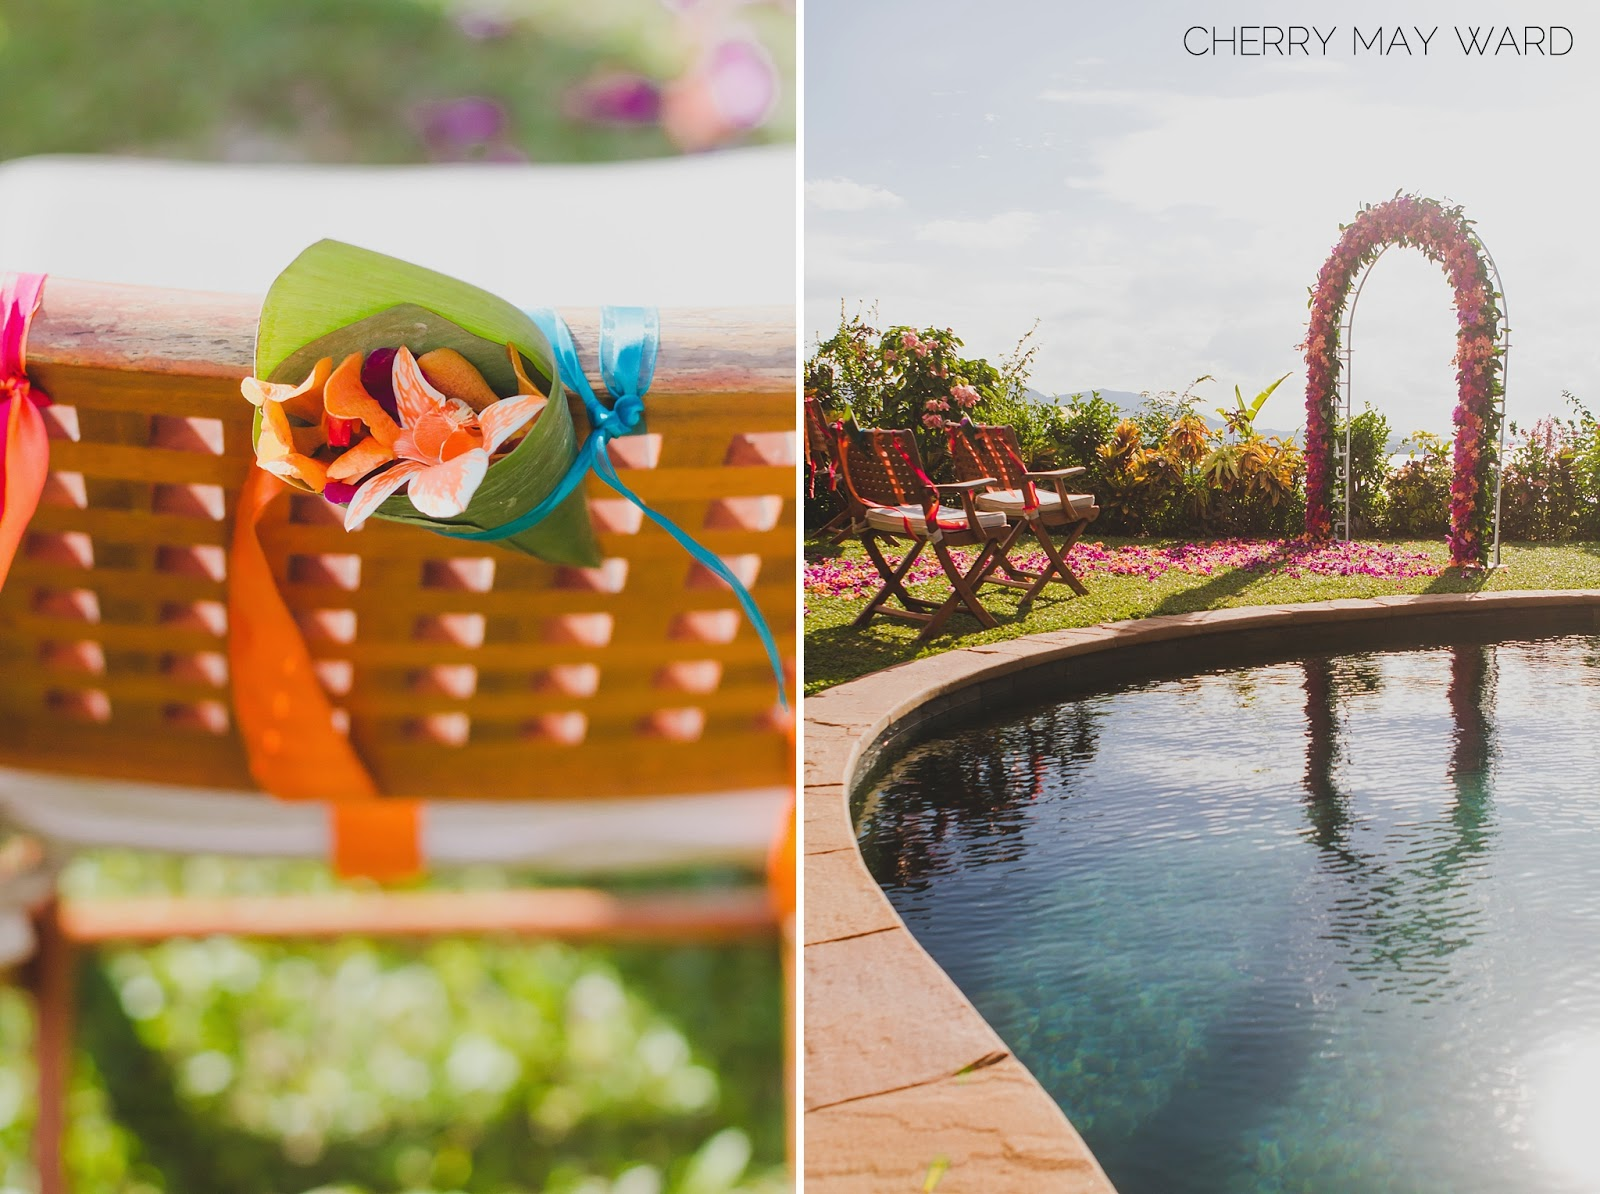 wedding ceremony next to pool, intimate villa wedding ceremony by the pool, Koh Samui wedding ceremony with a view, Cherry May Ward Photography, cone with flowers and petals to throw